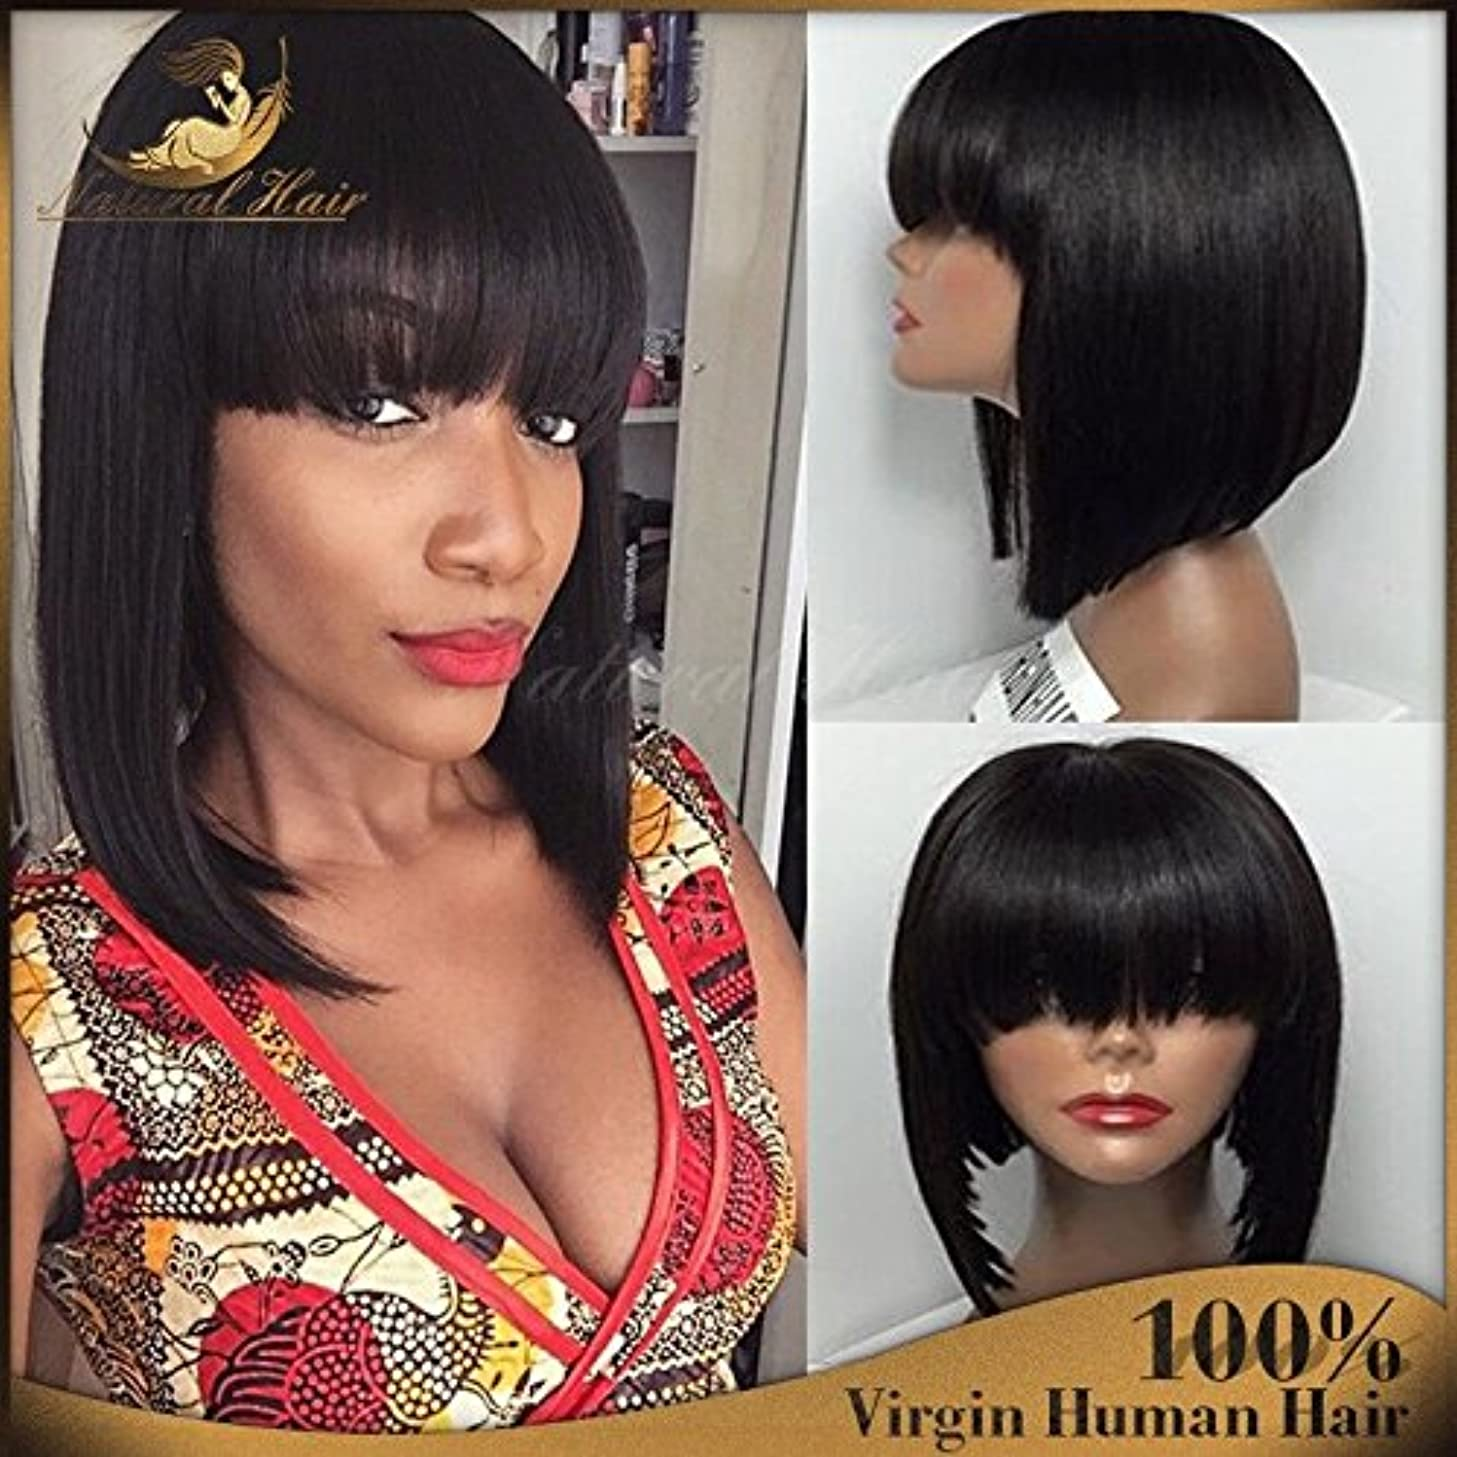 Short Bob Human Hair Lace Front Wig Full Bangs Glueless Short Brazilian Straight Human Hair Wig with Baby Hair for Black Woman 130 Density Lace front Bob Wigs with Fringe (10 inch, lace frontal wig)